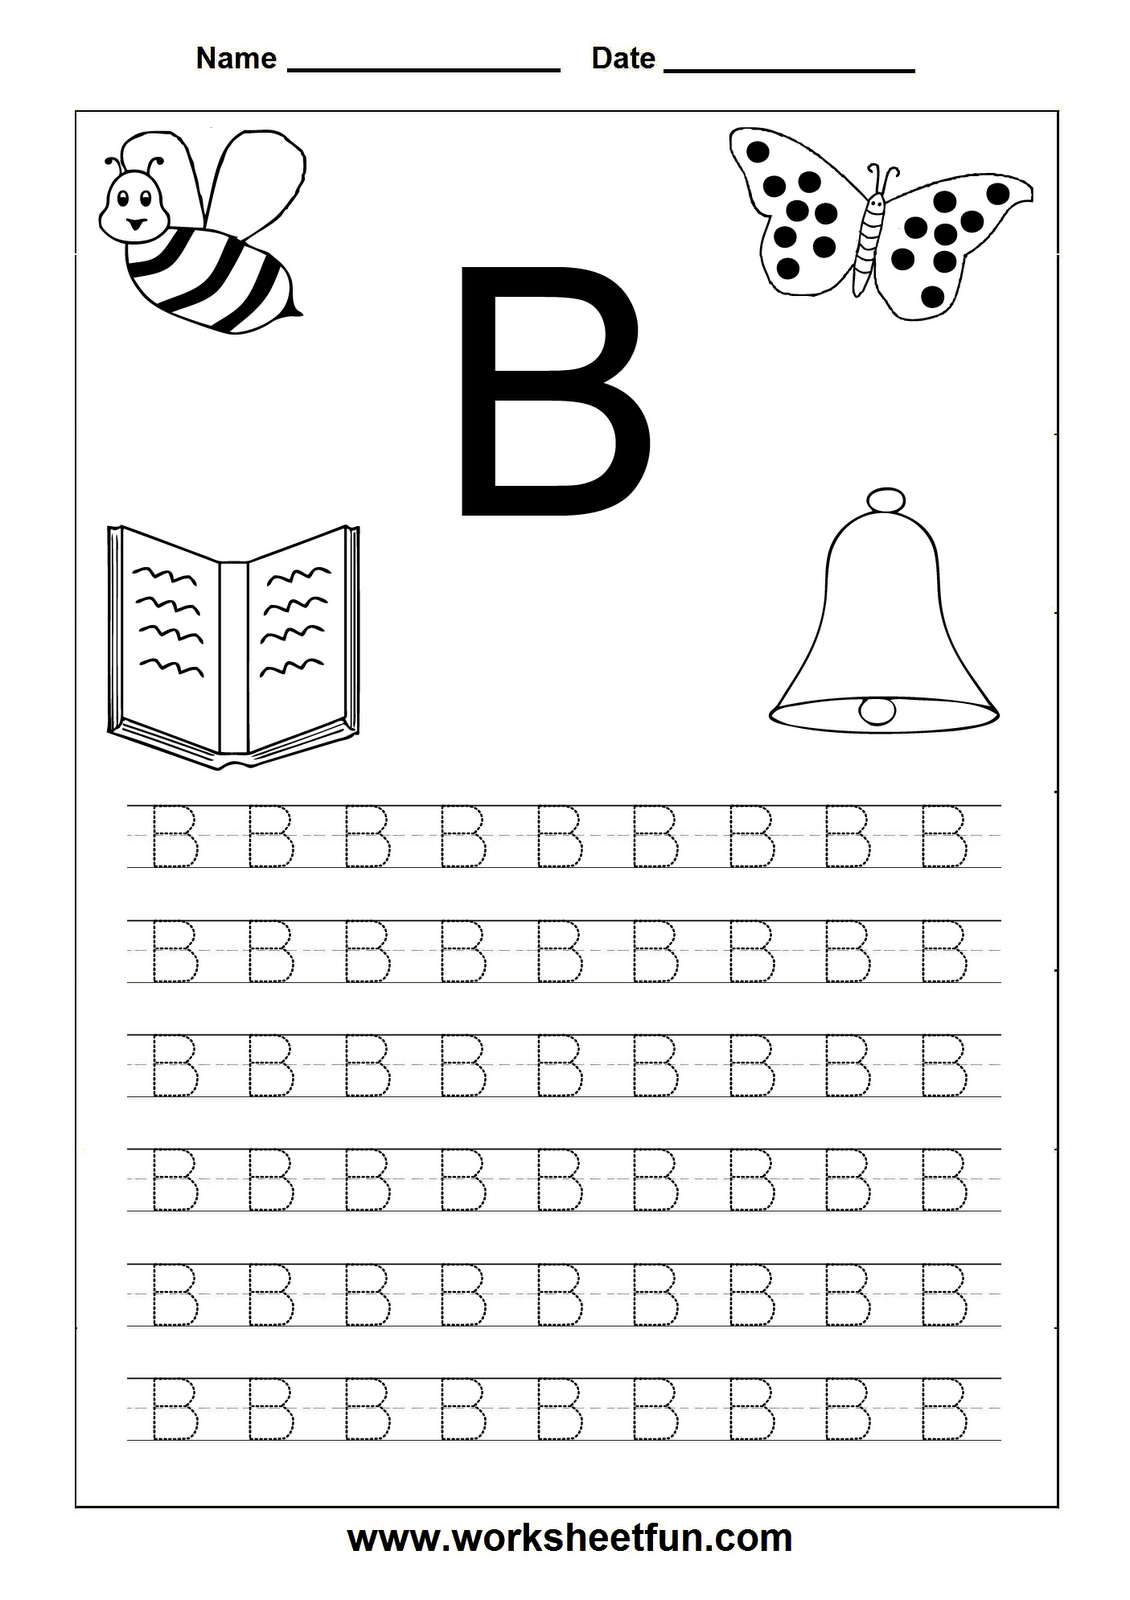 Free Worksheet Kindergarten Alphabet Tracing Worksheets 4 best images of printable letter s tracing worksheets preschool free printables for kindergarten capital and small letters alphabet tracing